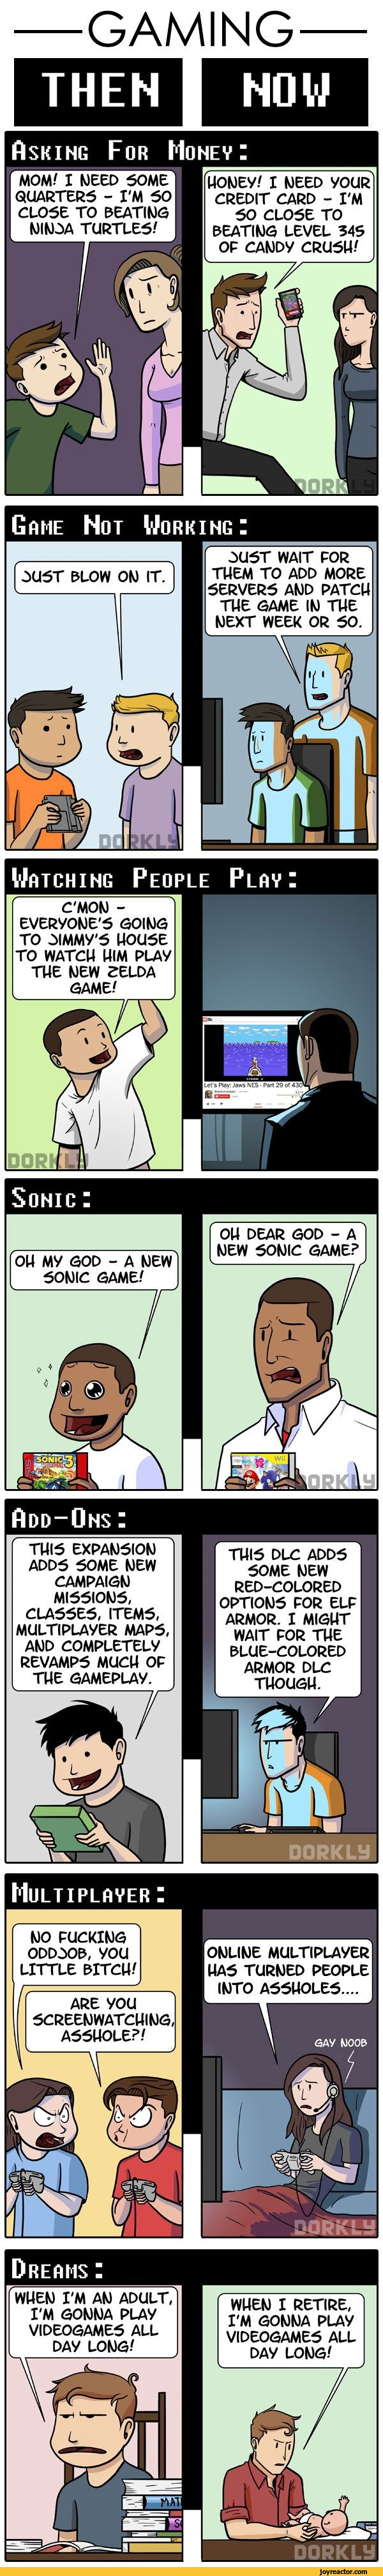 comics-dorkly-games-gamers-943622.jpeg